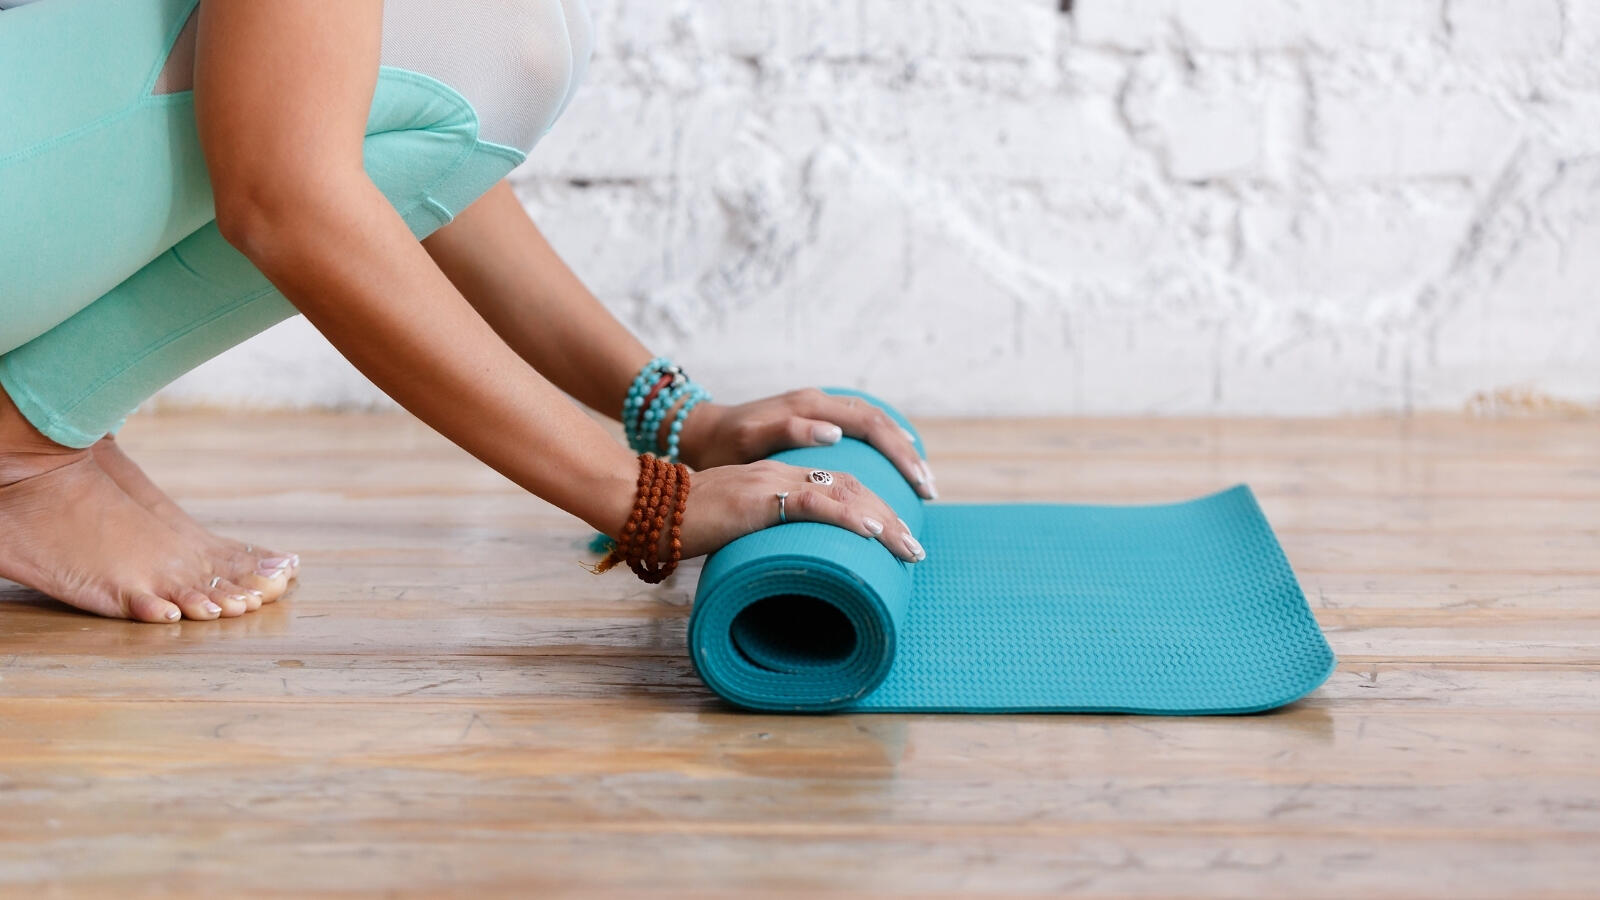 What equipment do you need to do yoga_